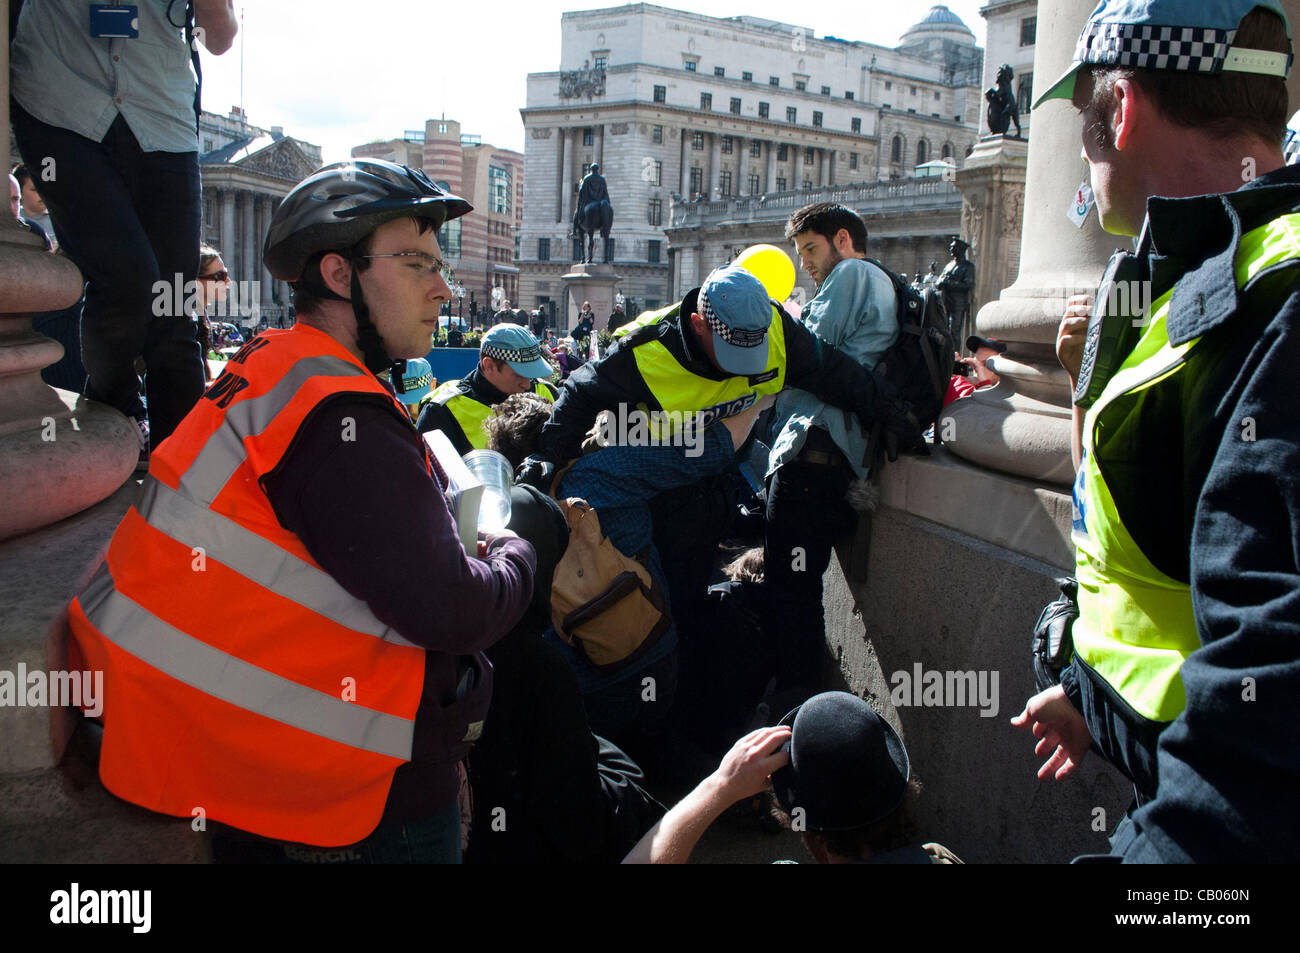 London, UK. 12/05/12. Officers of the Tactical Support Group and Occupy protesters clash on the Steps of the Royal - Stock Image